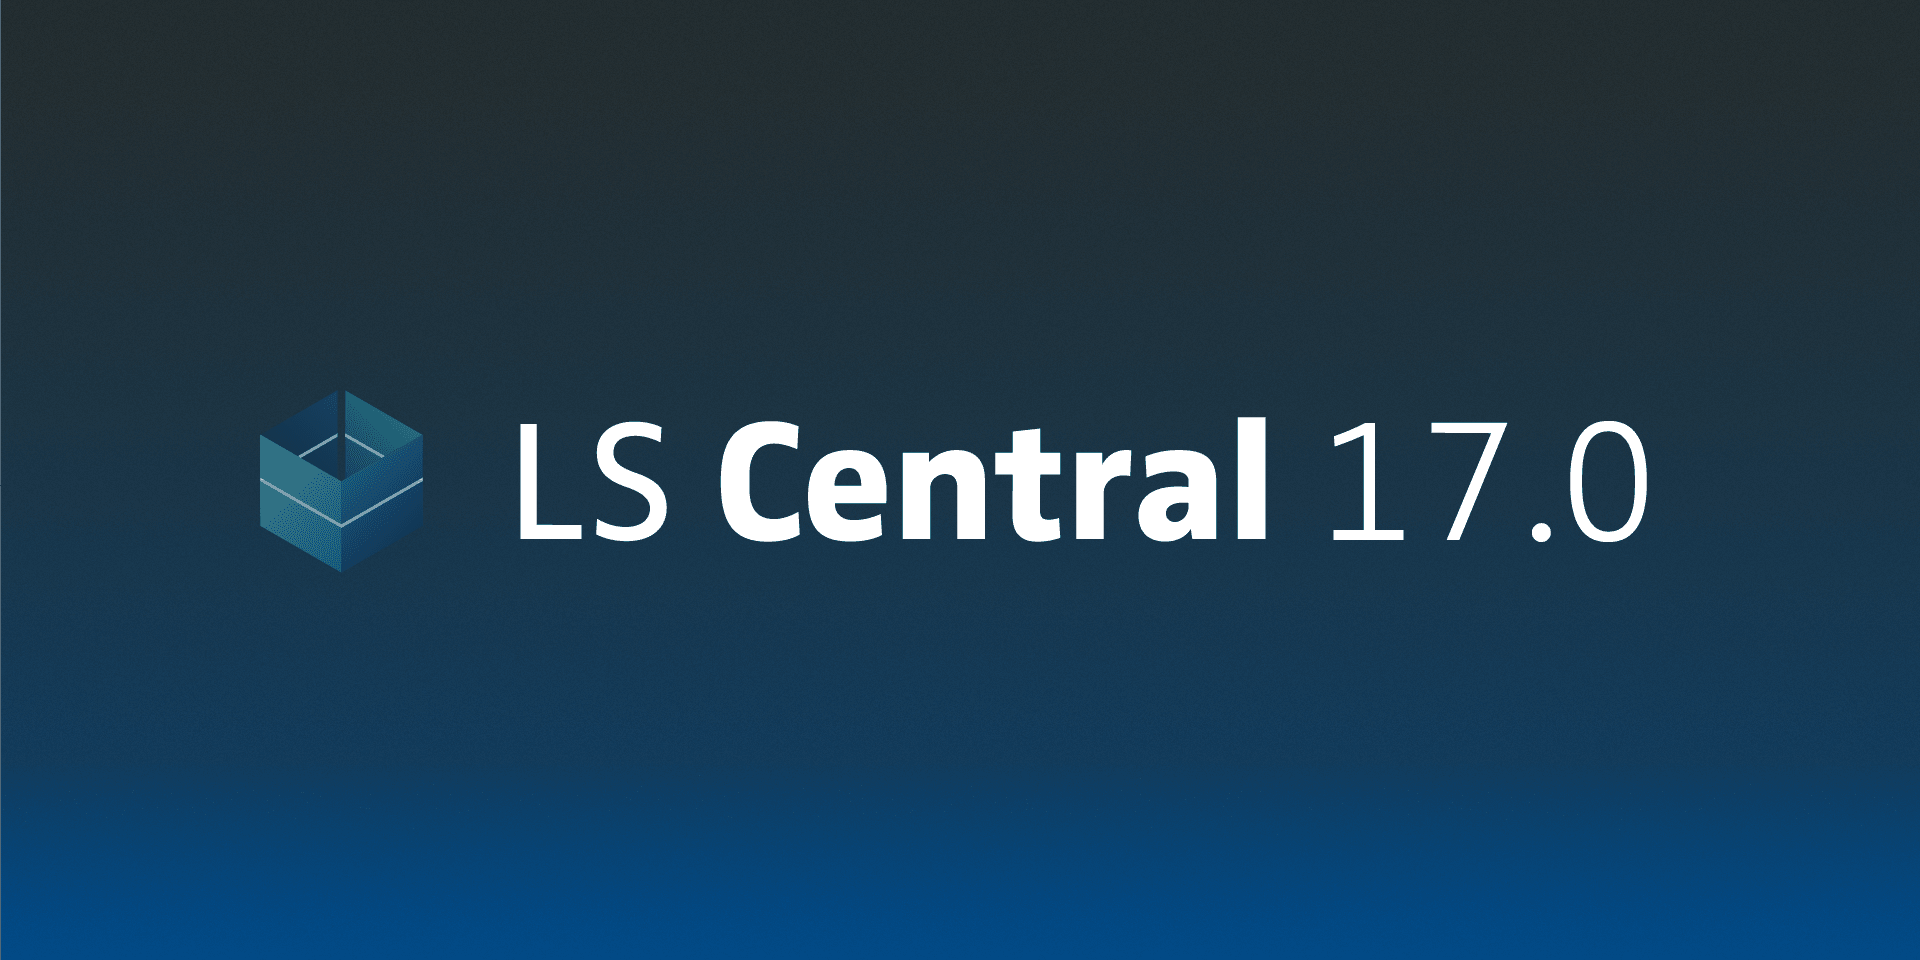 LS Central 17.0: Improved reservation functionality, cost-effective forecasting, support for payment tokens